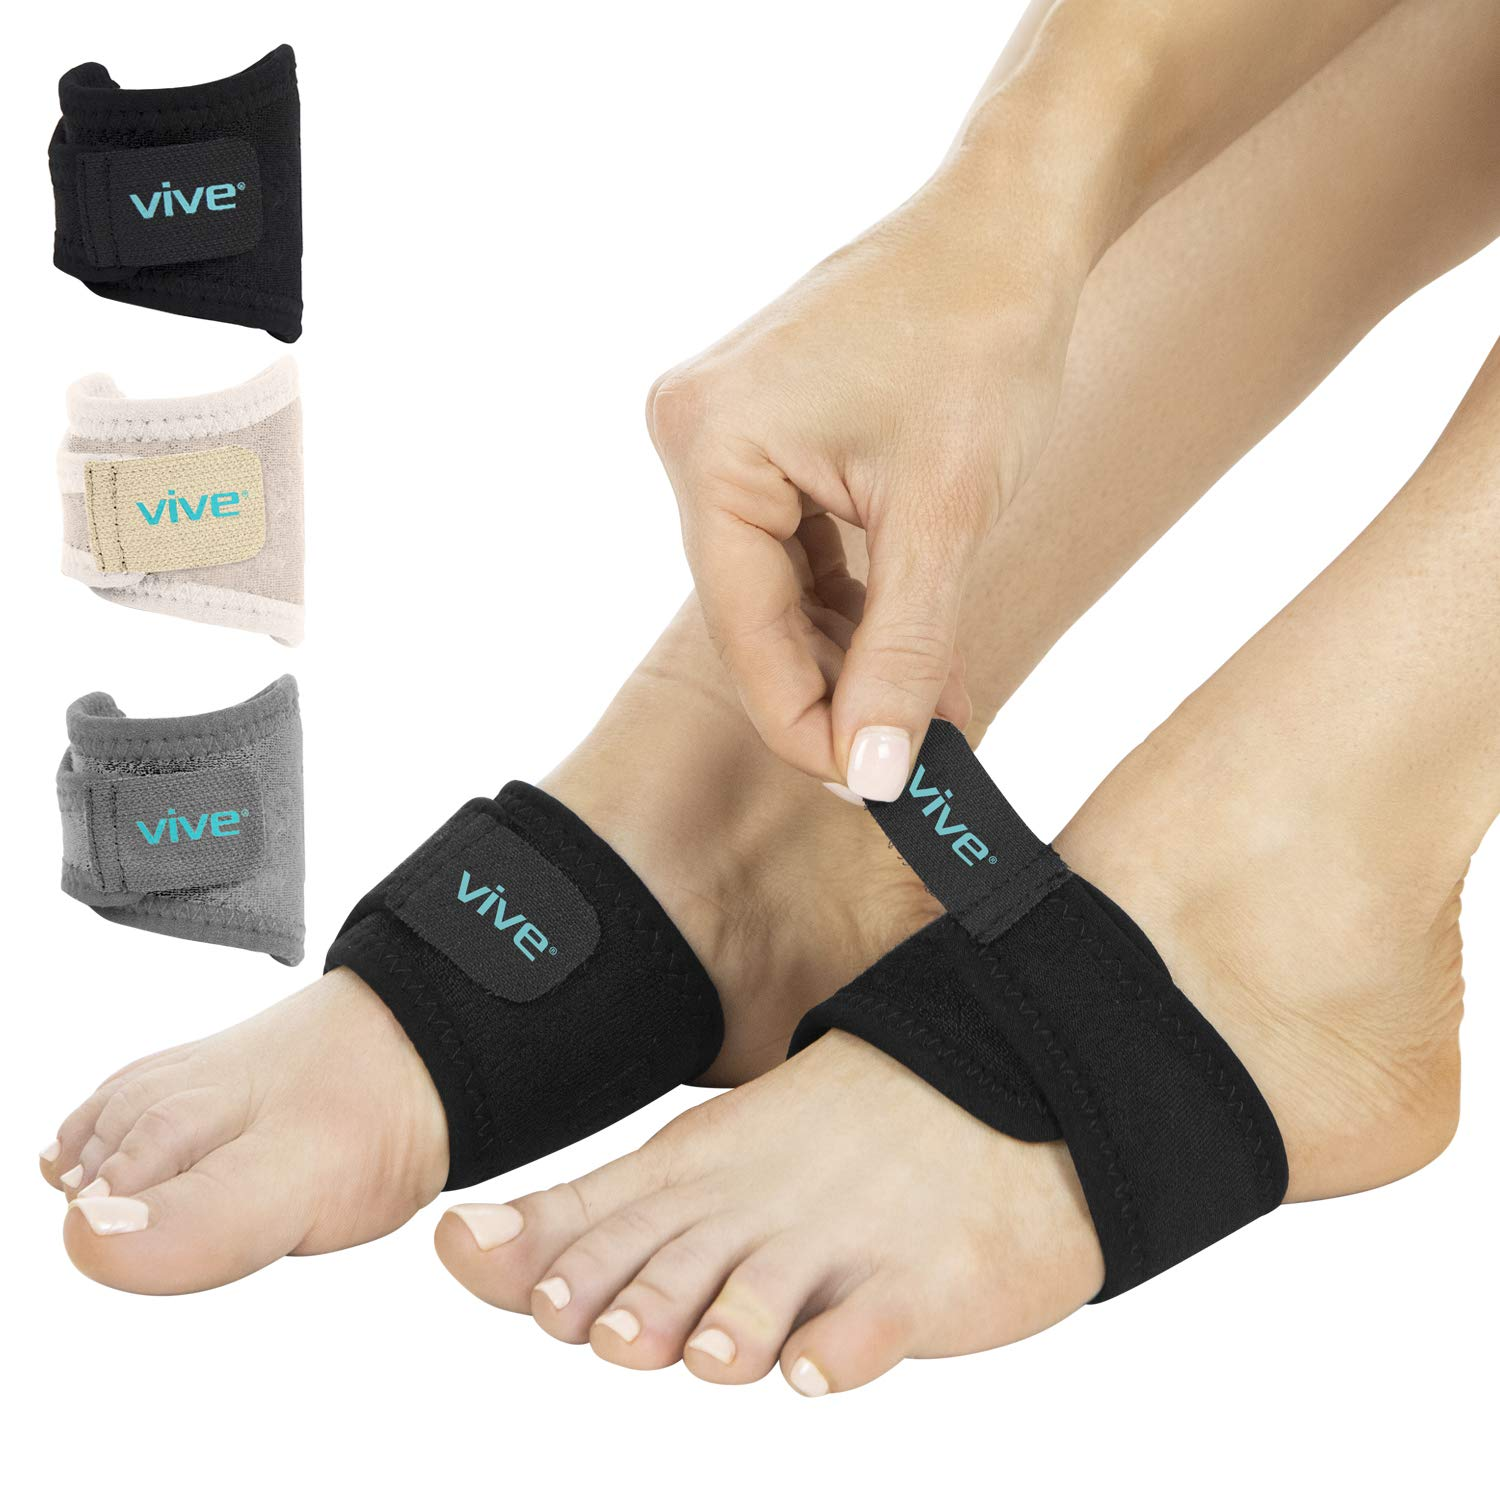 2346ef402f Amazon.com: Vive Arch Support Brace (Pair) - Plantar Fasciitis Gel Strap  for Men, Woman - Orthotic Compression Support Wrap Aids Foot Pain, High  Arches, ...